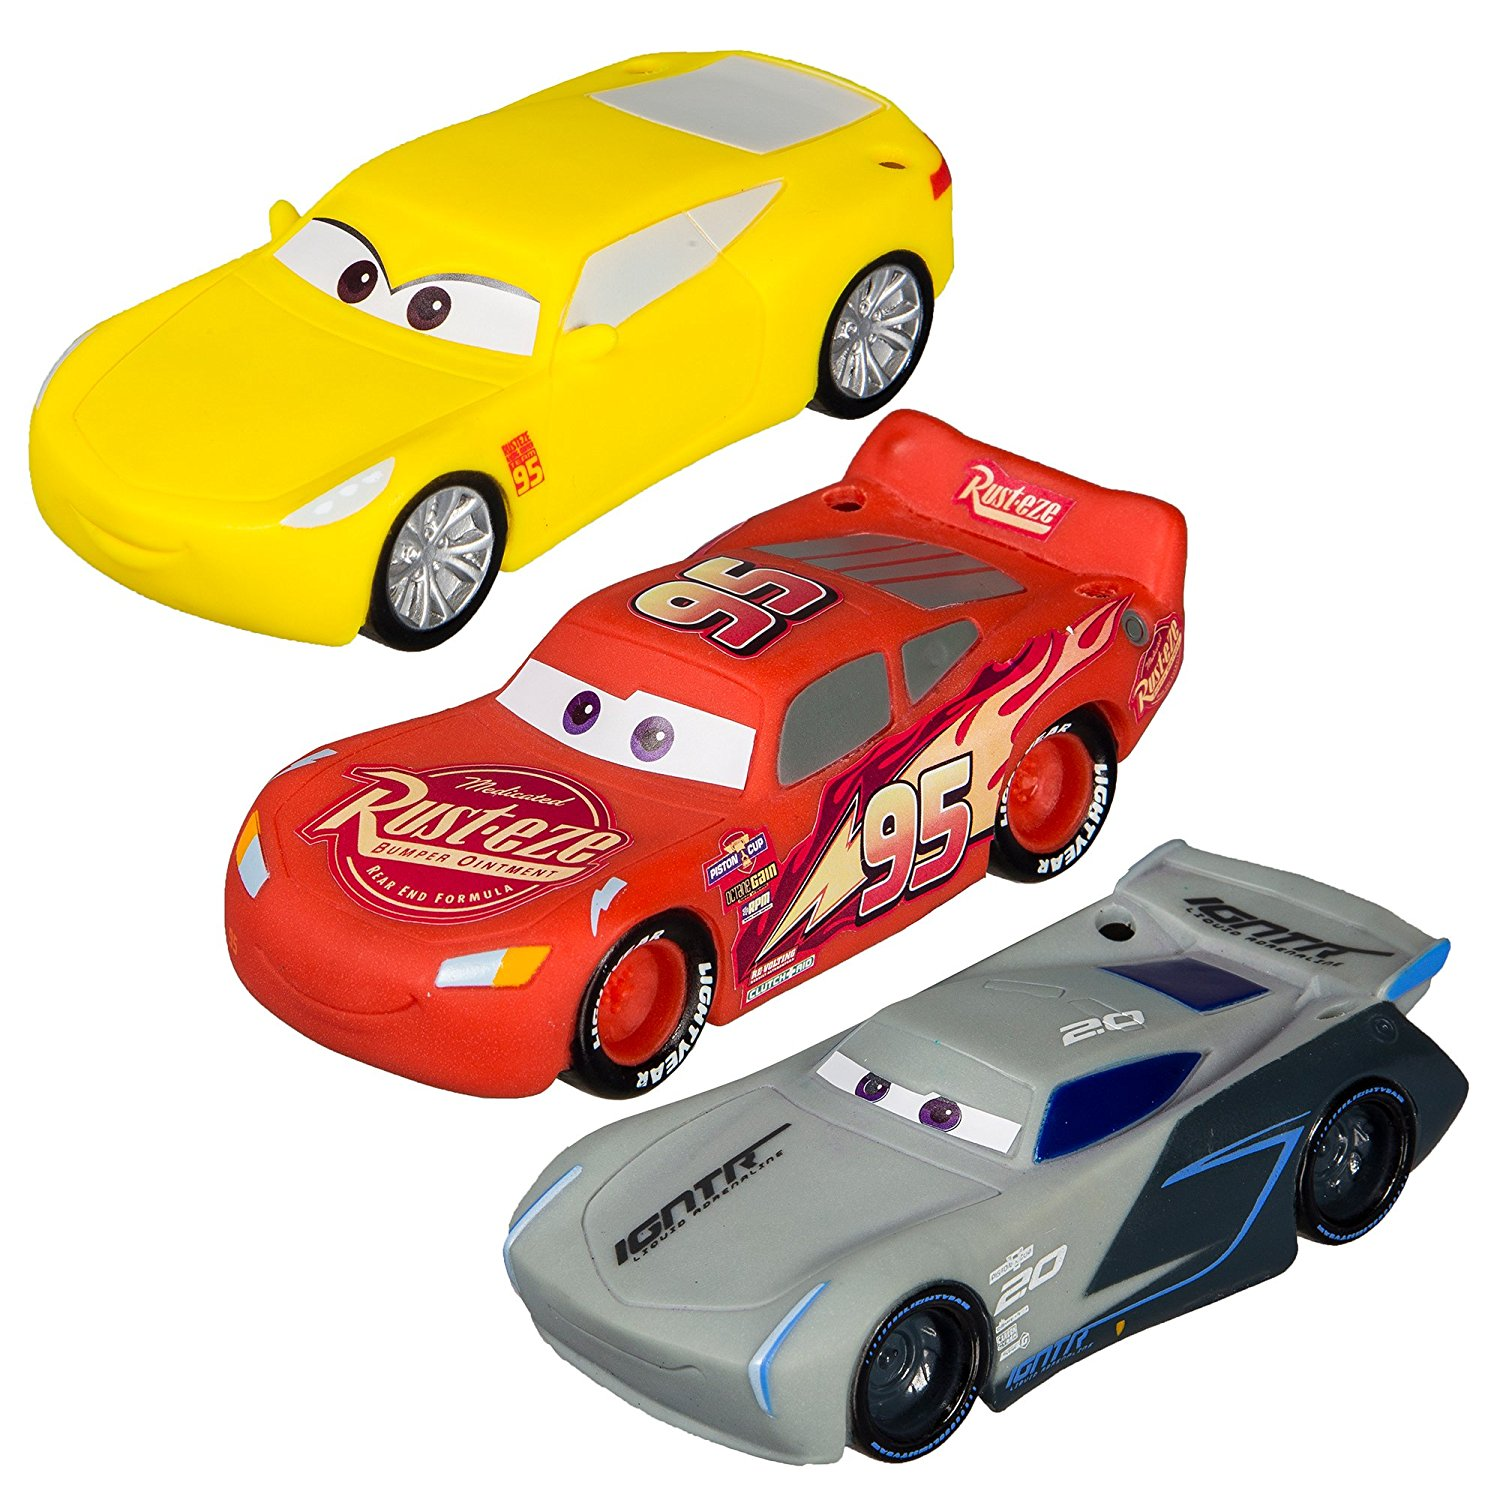 New Disney Pixar Cars 3 Movie Toys And Books For Kids